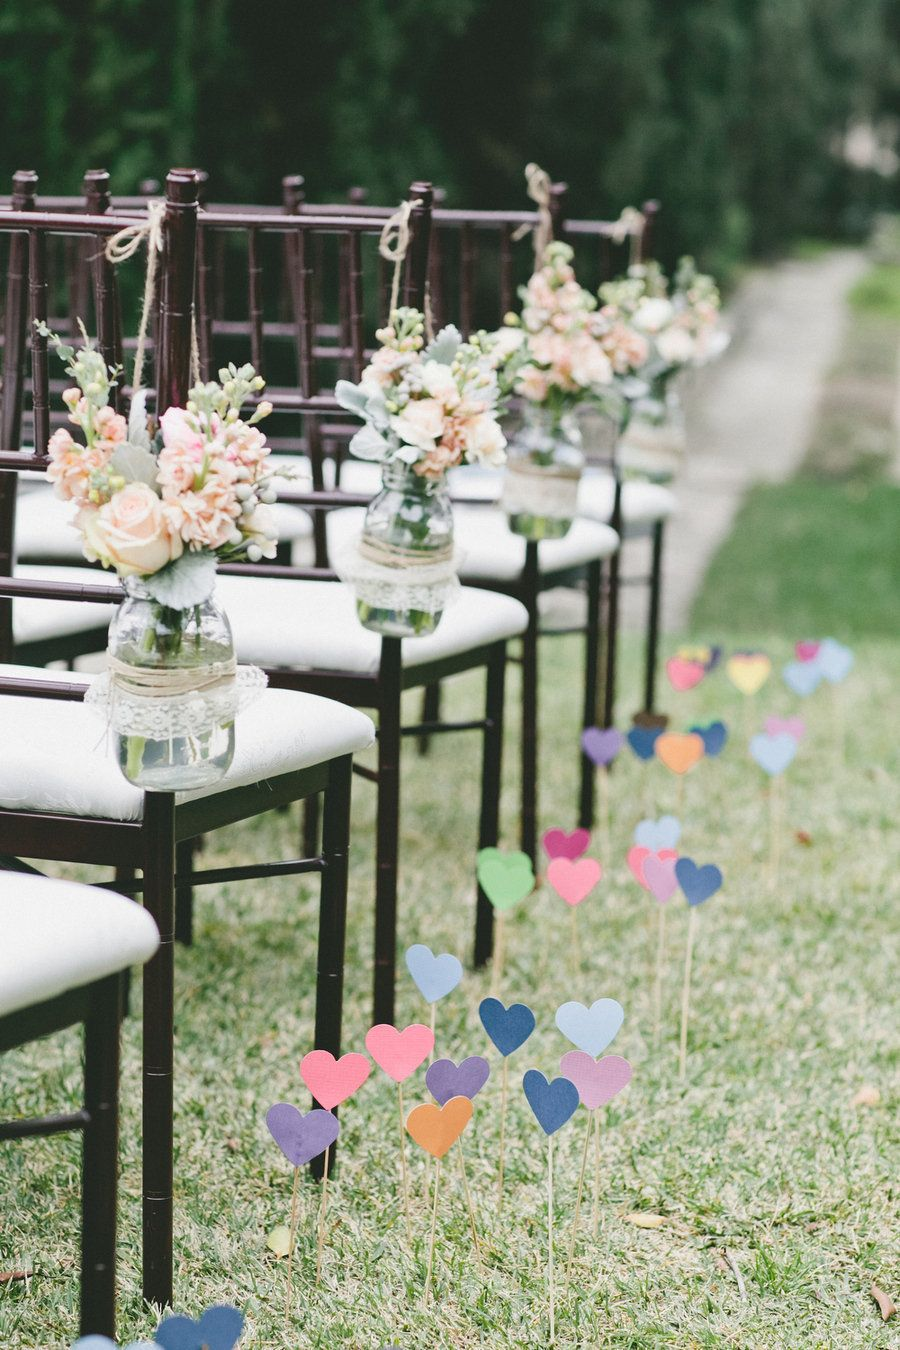 Outdoor wedding ceremony chair decorations - Sierra Madre California Wedding From Onelove Photography Wedding Ceremony Chairswedding Ceremony Decorationswedding